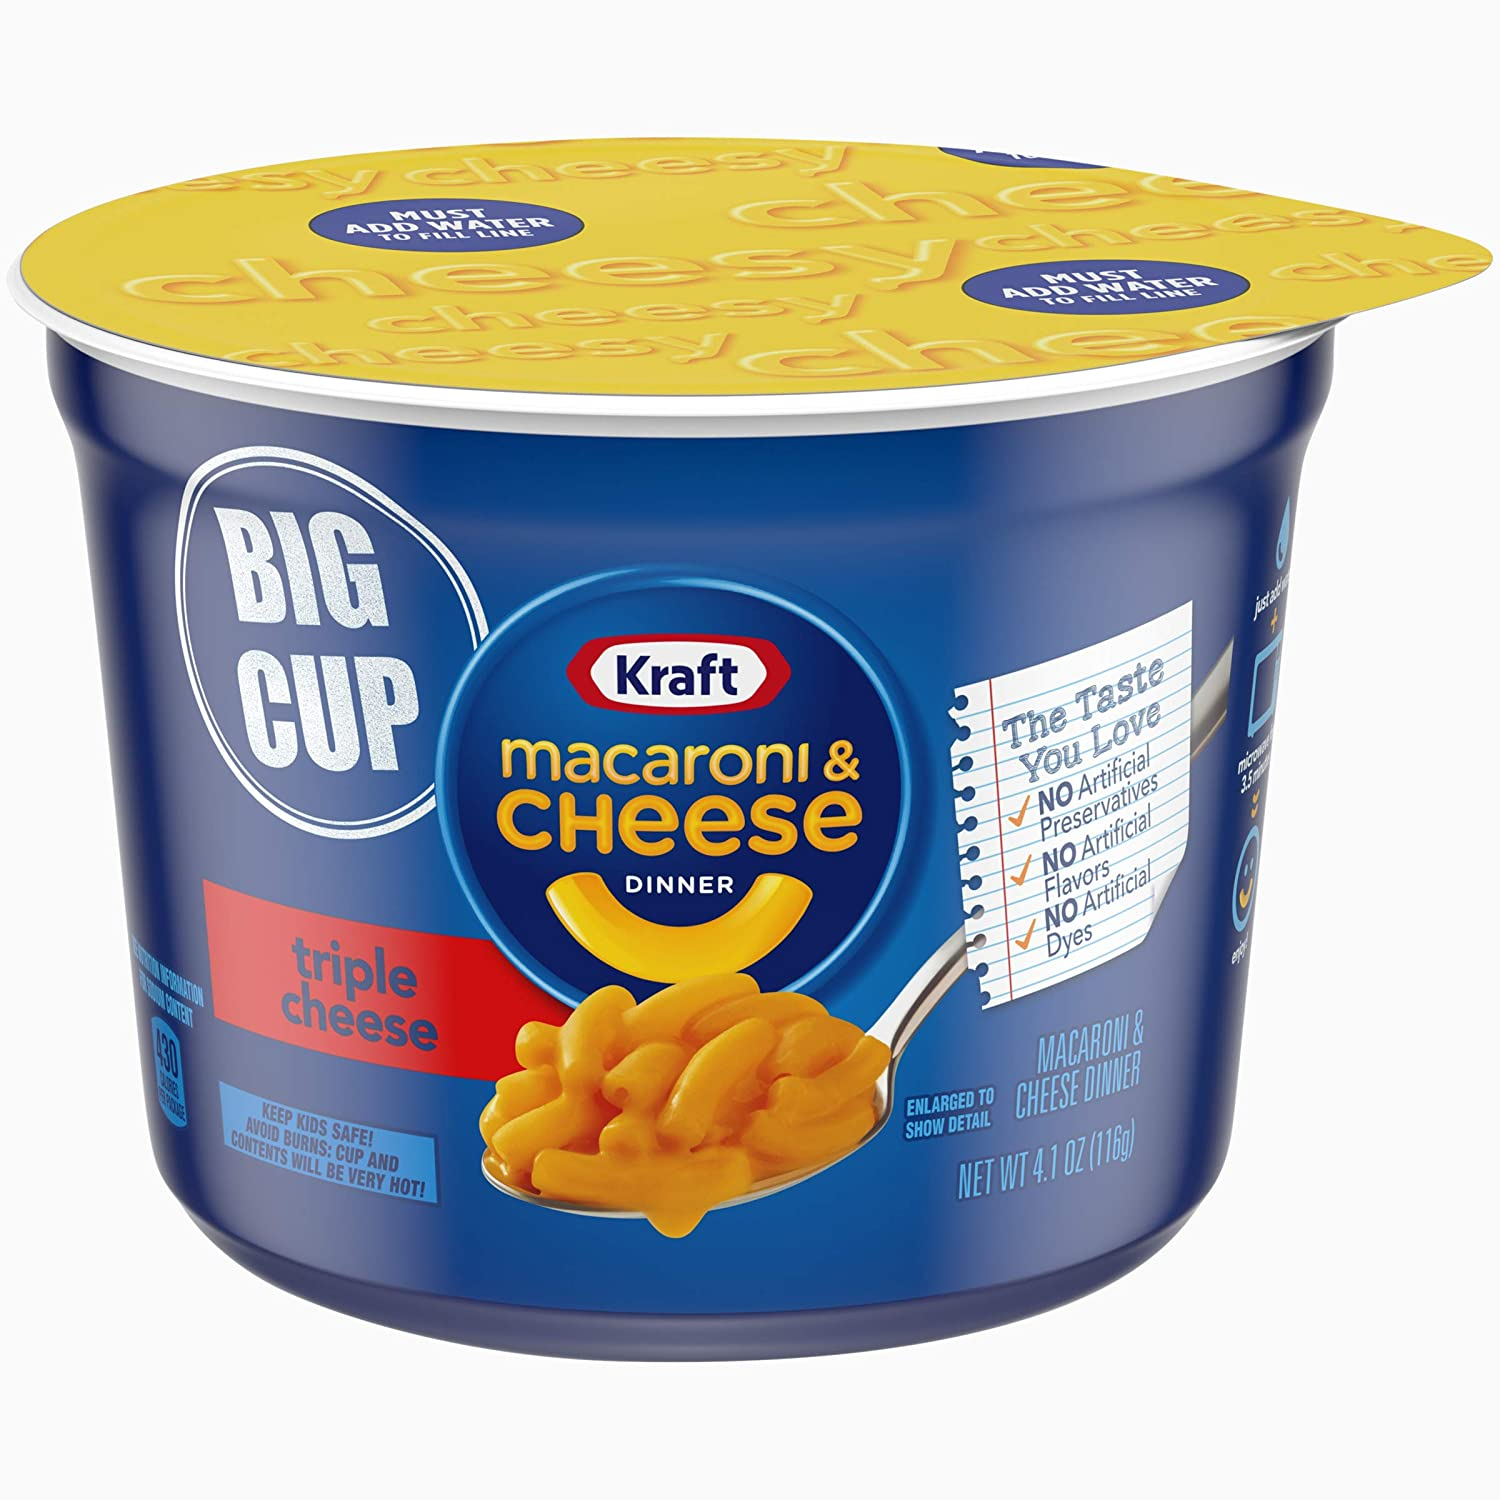 Kraft Easy Mac Triple Cheese Mac & Cheese Dinner (4.1 oz Cups, Pack of 8)